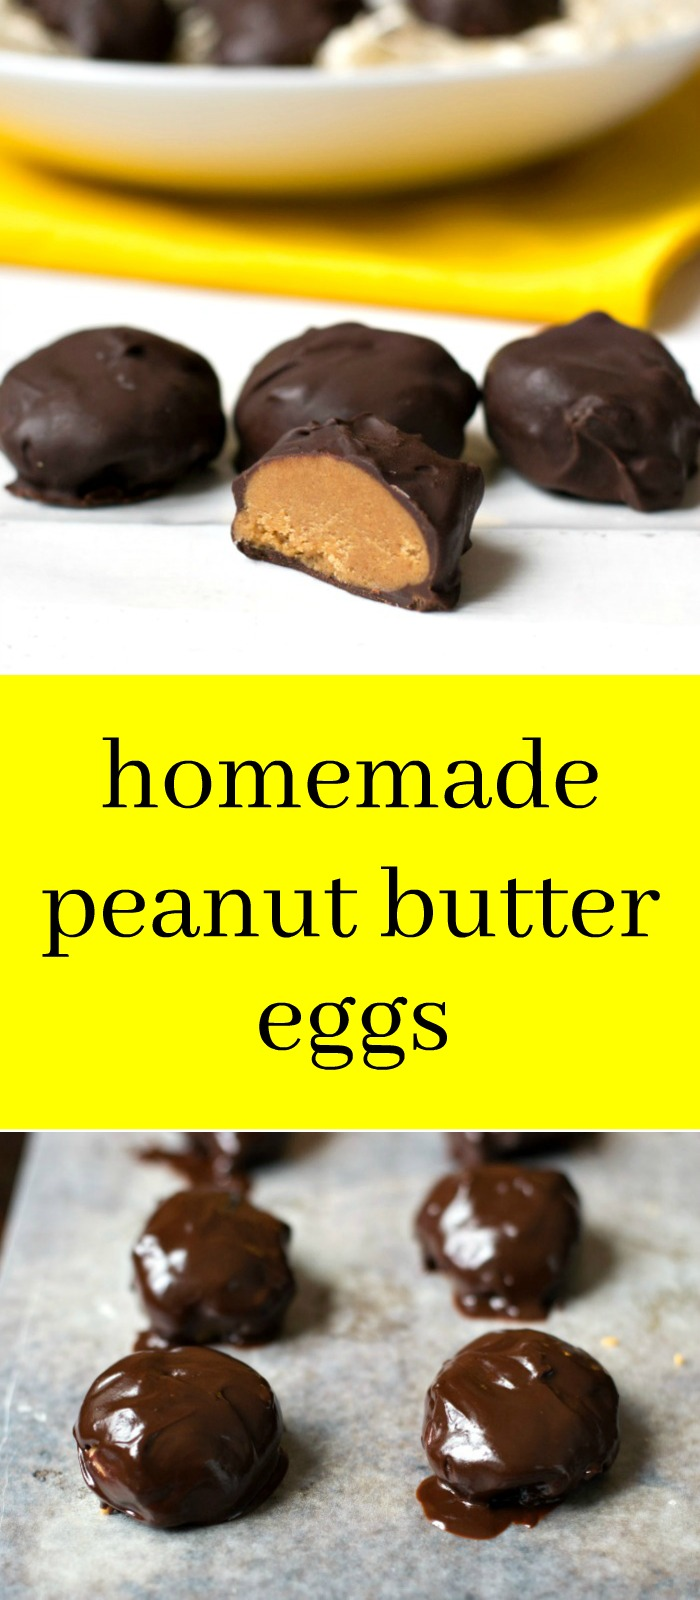 These homemade peanut butter eggs are such a delicious treat for Easter! This healthy recipe is a great alternative to the packaged version. You won't be able to stop eating them! Recipe from realfoodrealdeals.com